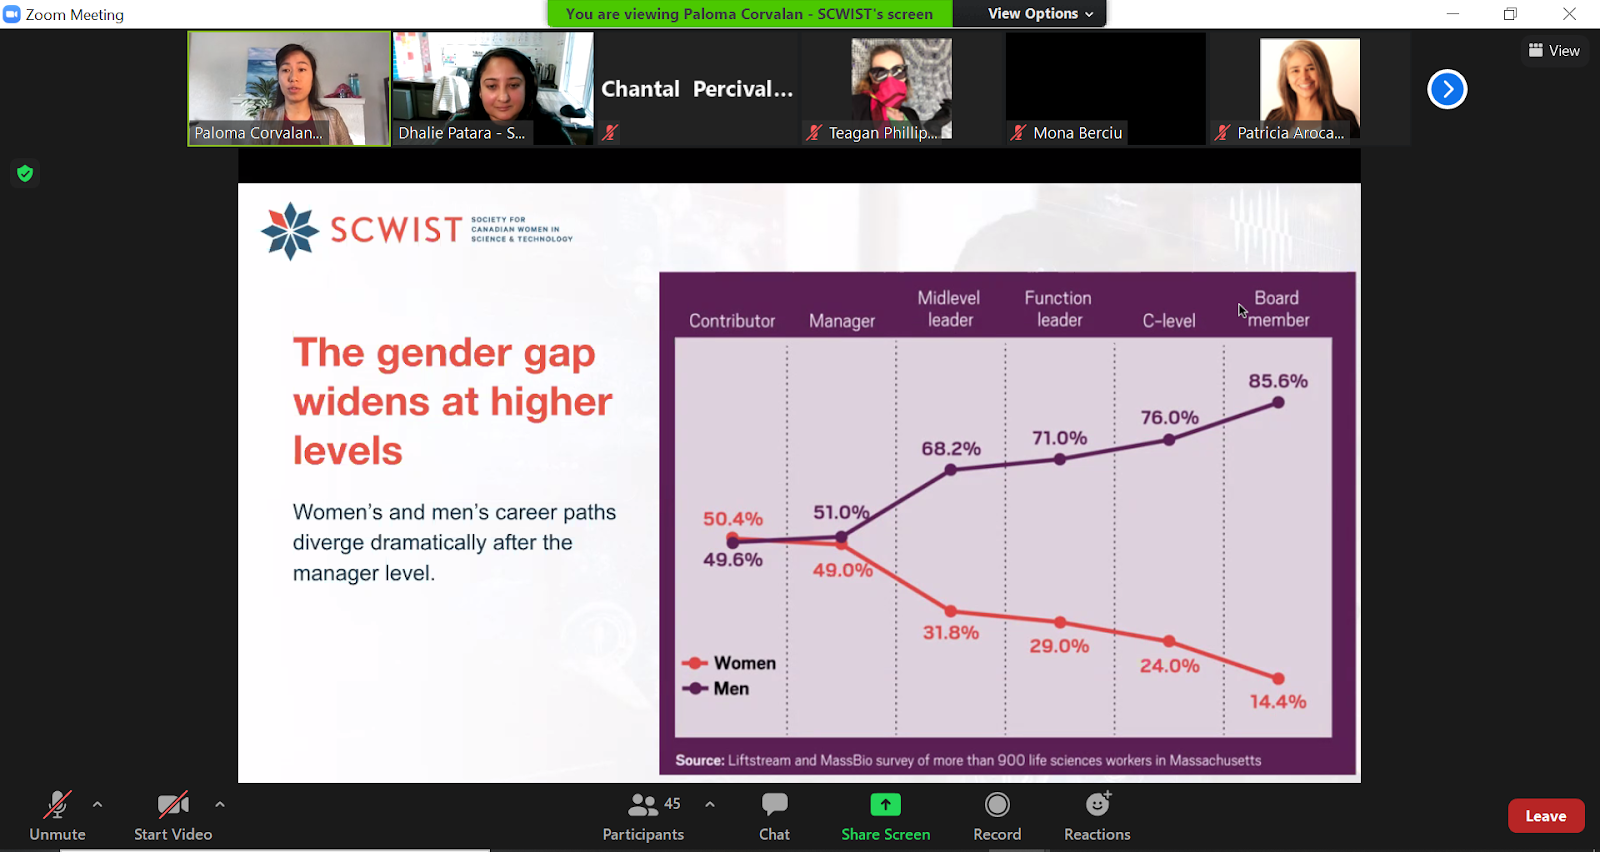 Paloma Corvalan discusses the gender gap throughout career levels.